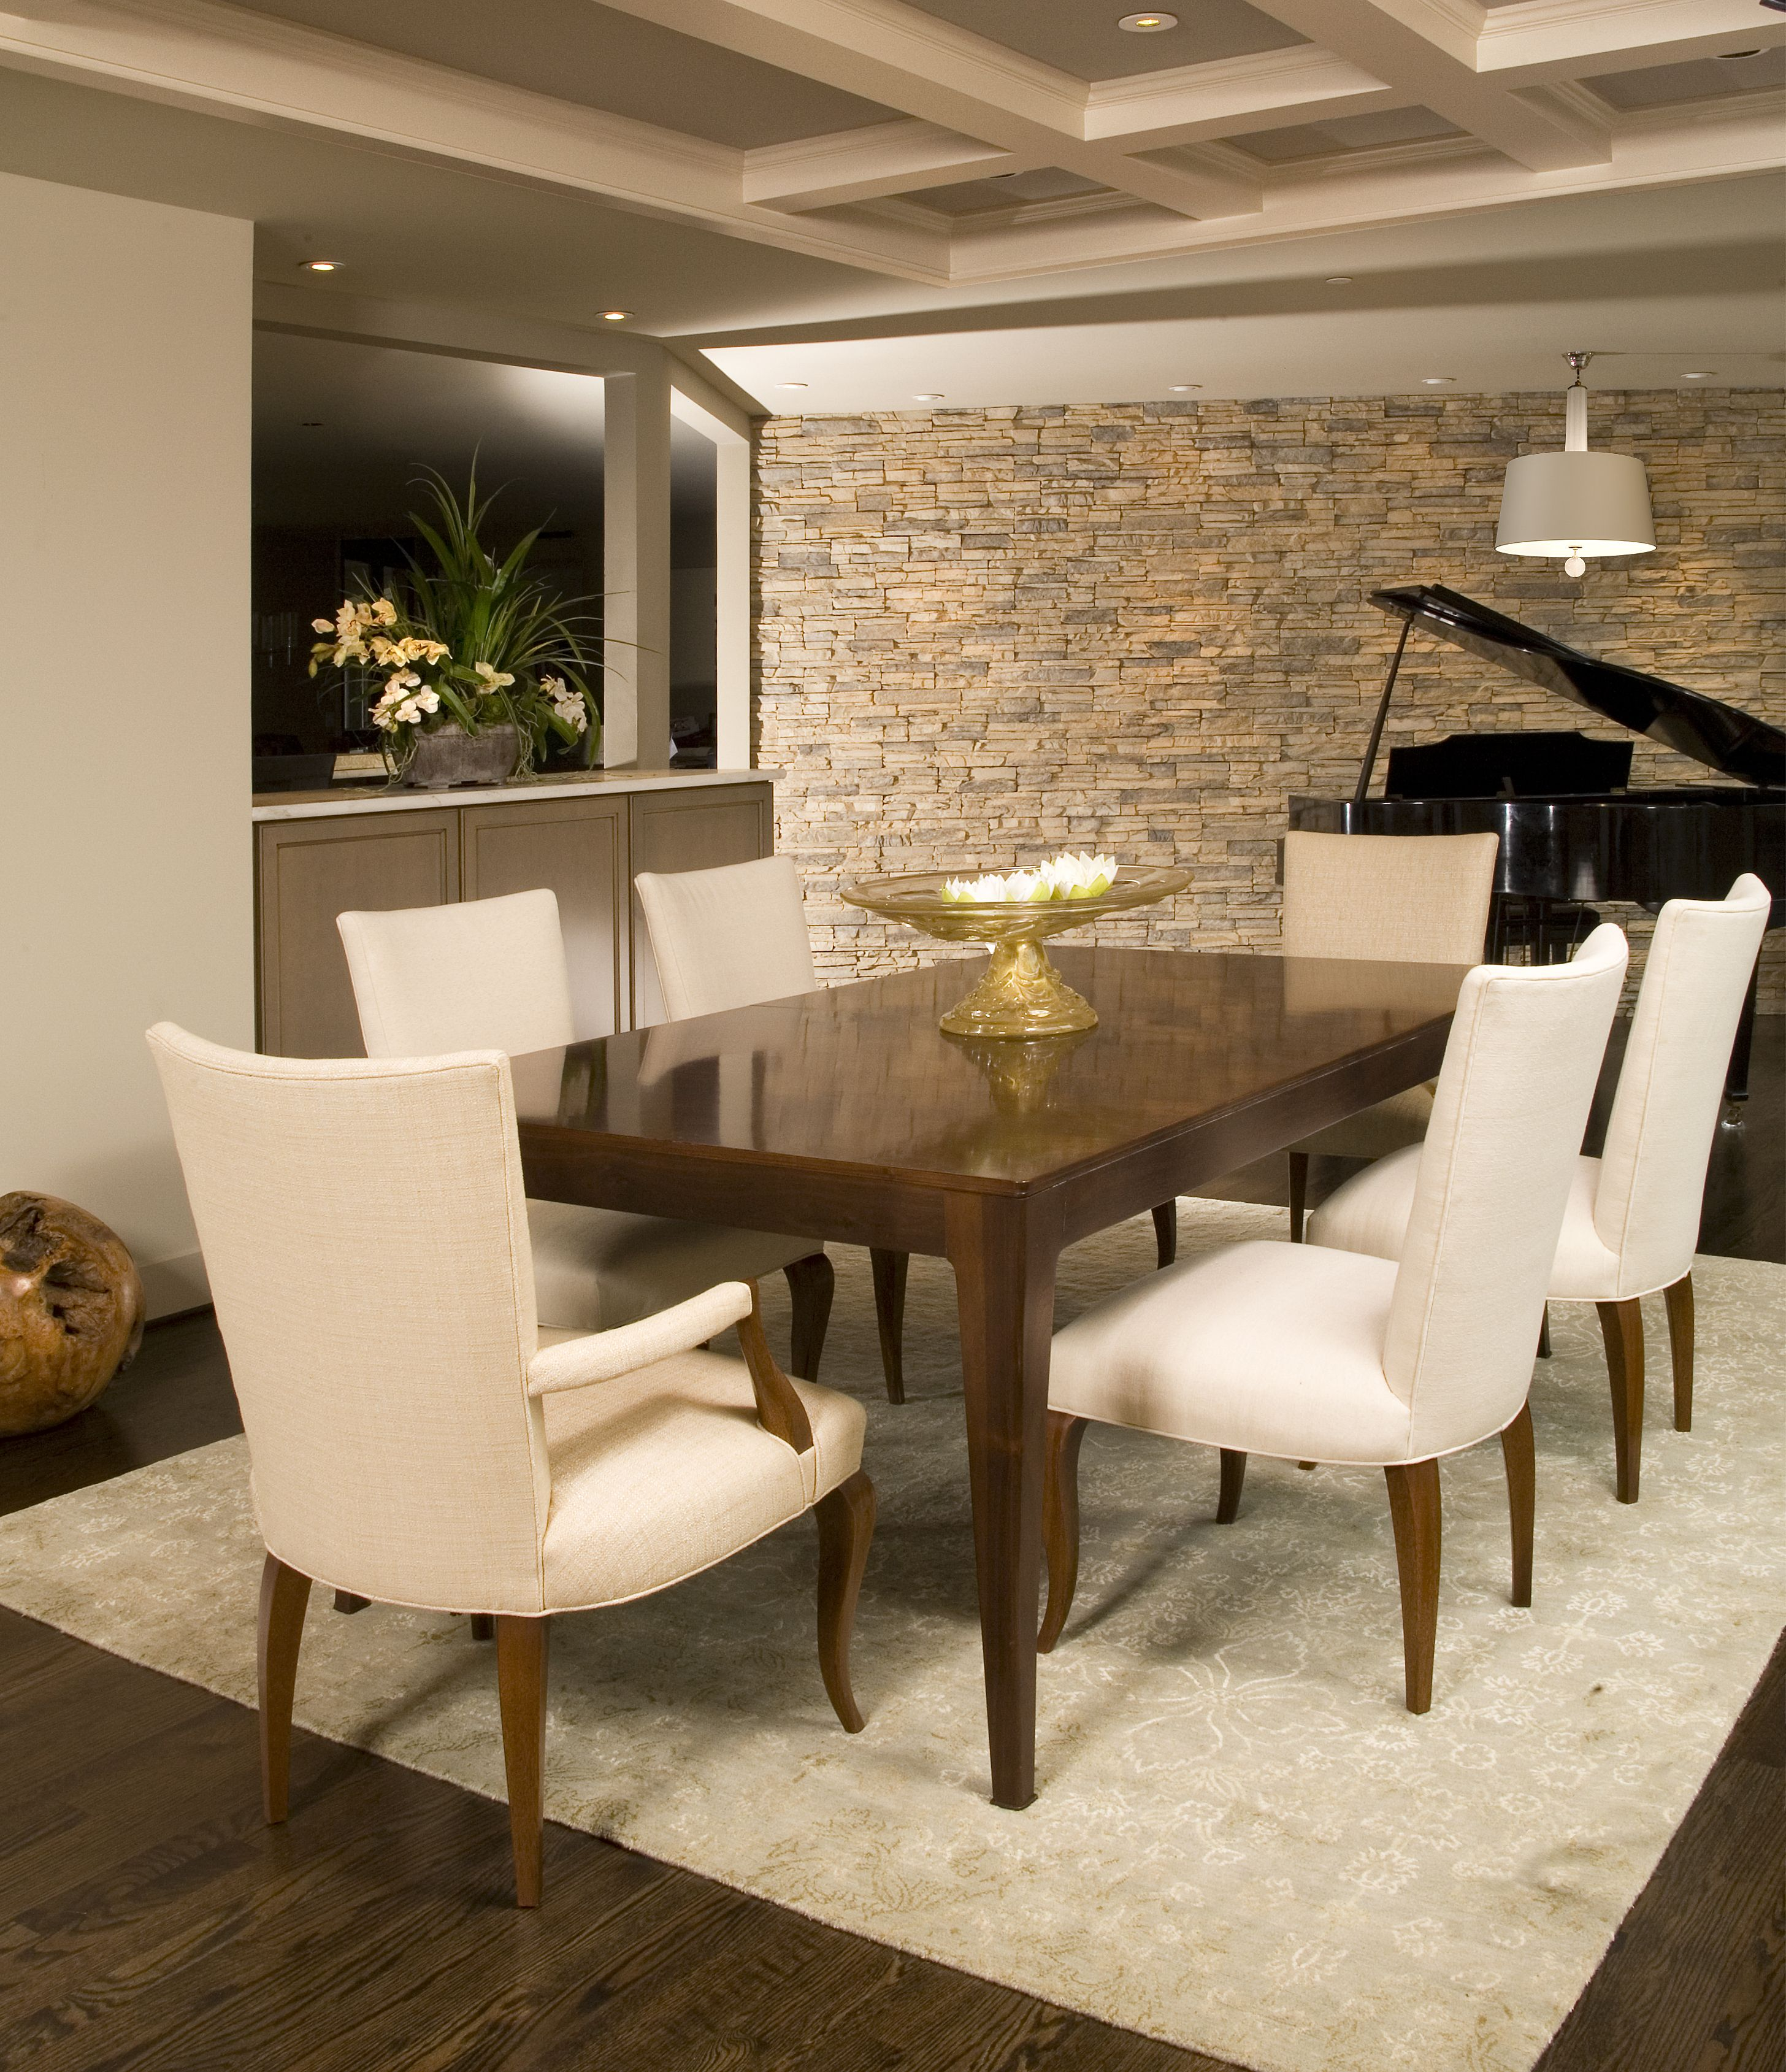 Accent Stone Wall Modern Dining Room With Clean Lines And Neutral Stone Wall